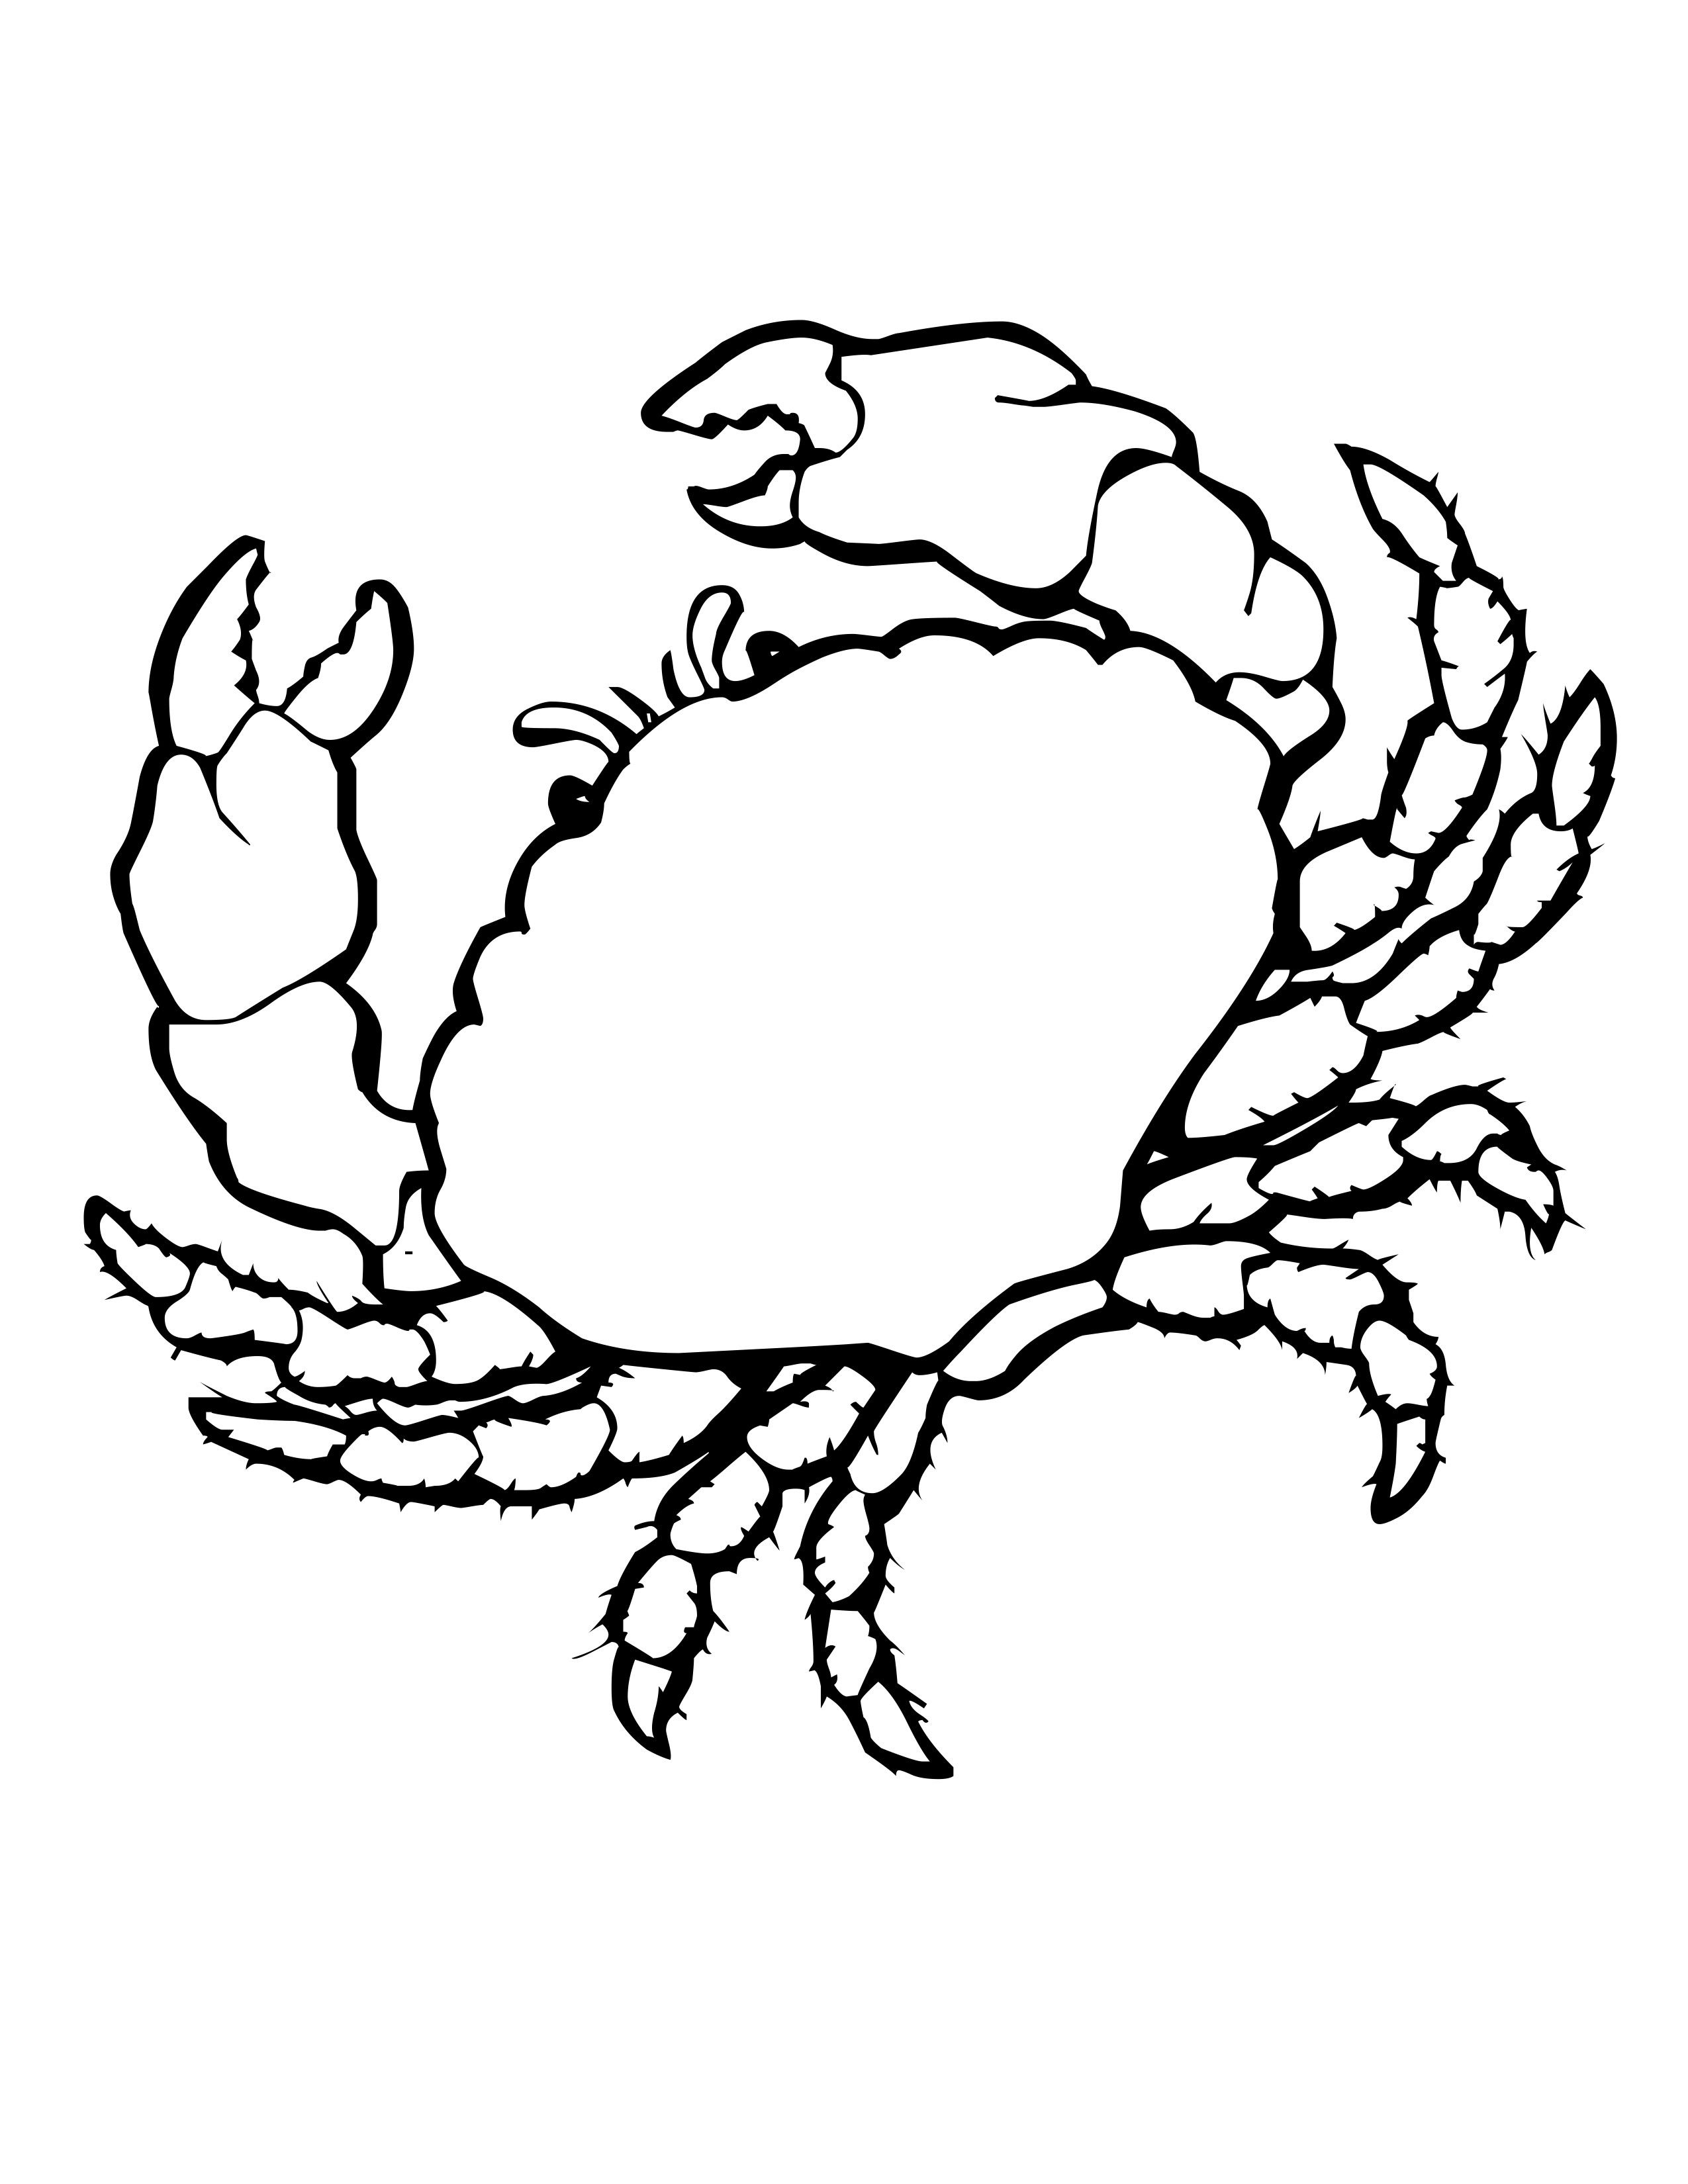 Rine Animals Coloring Pages Crab Coloring